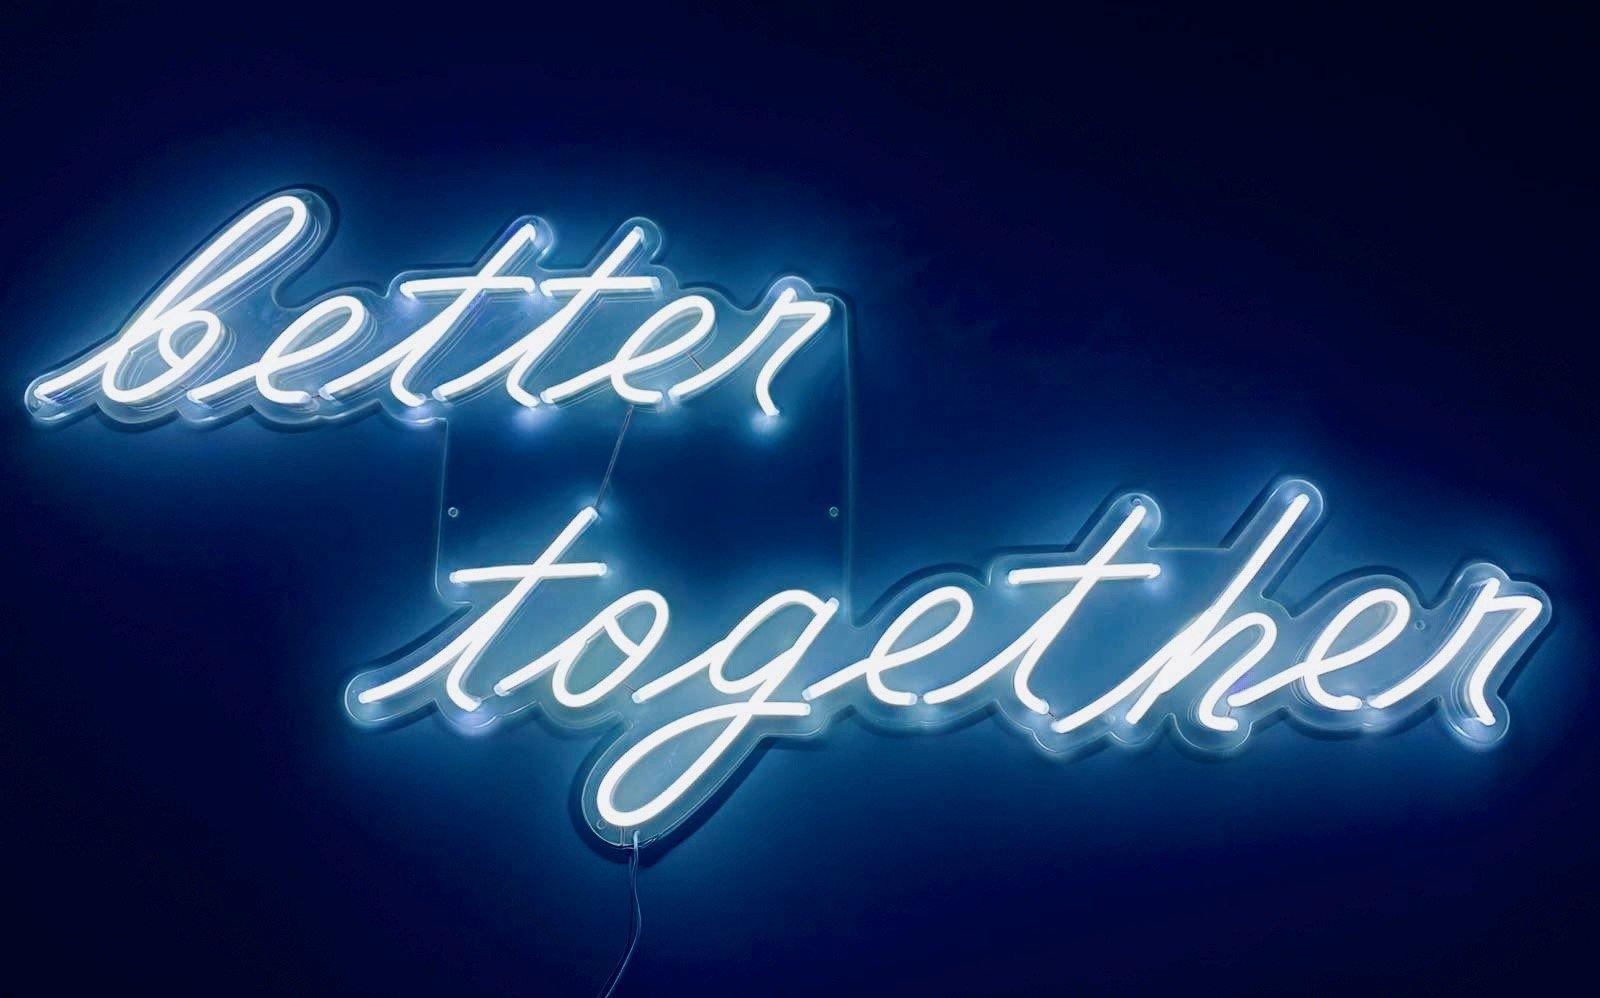 Neon LED better together #NEONlookED - BuySam